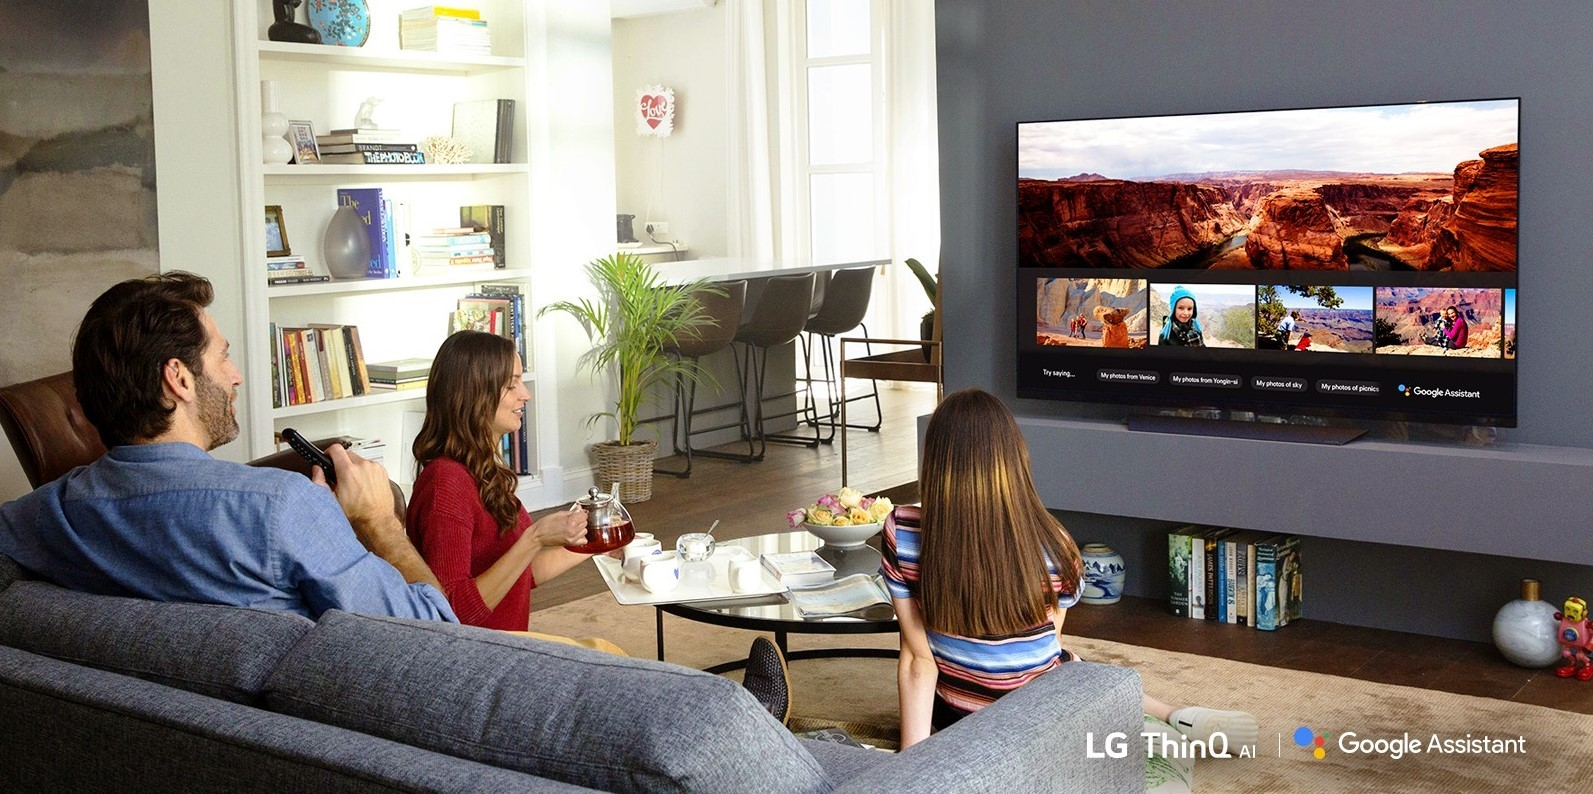 A family sits in the living room while looking at their travel photos via Google Assistant on LG's ThinQ TV.